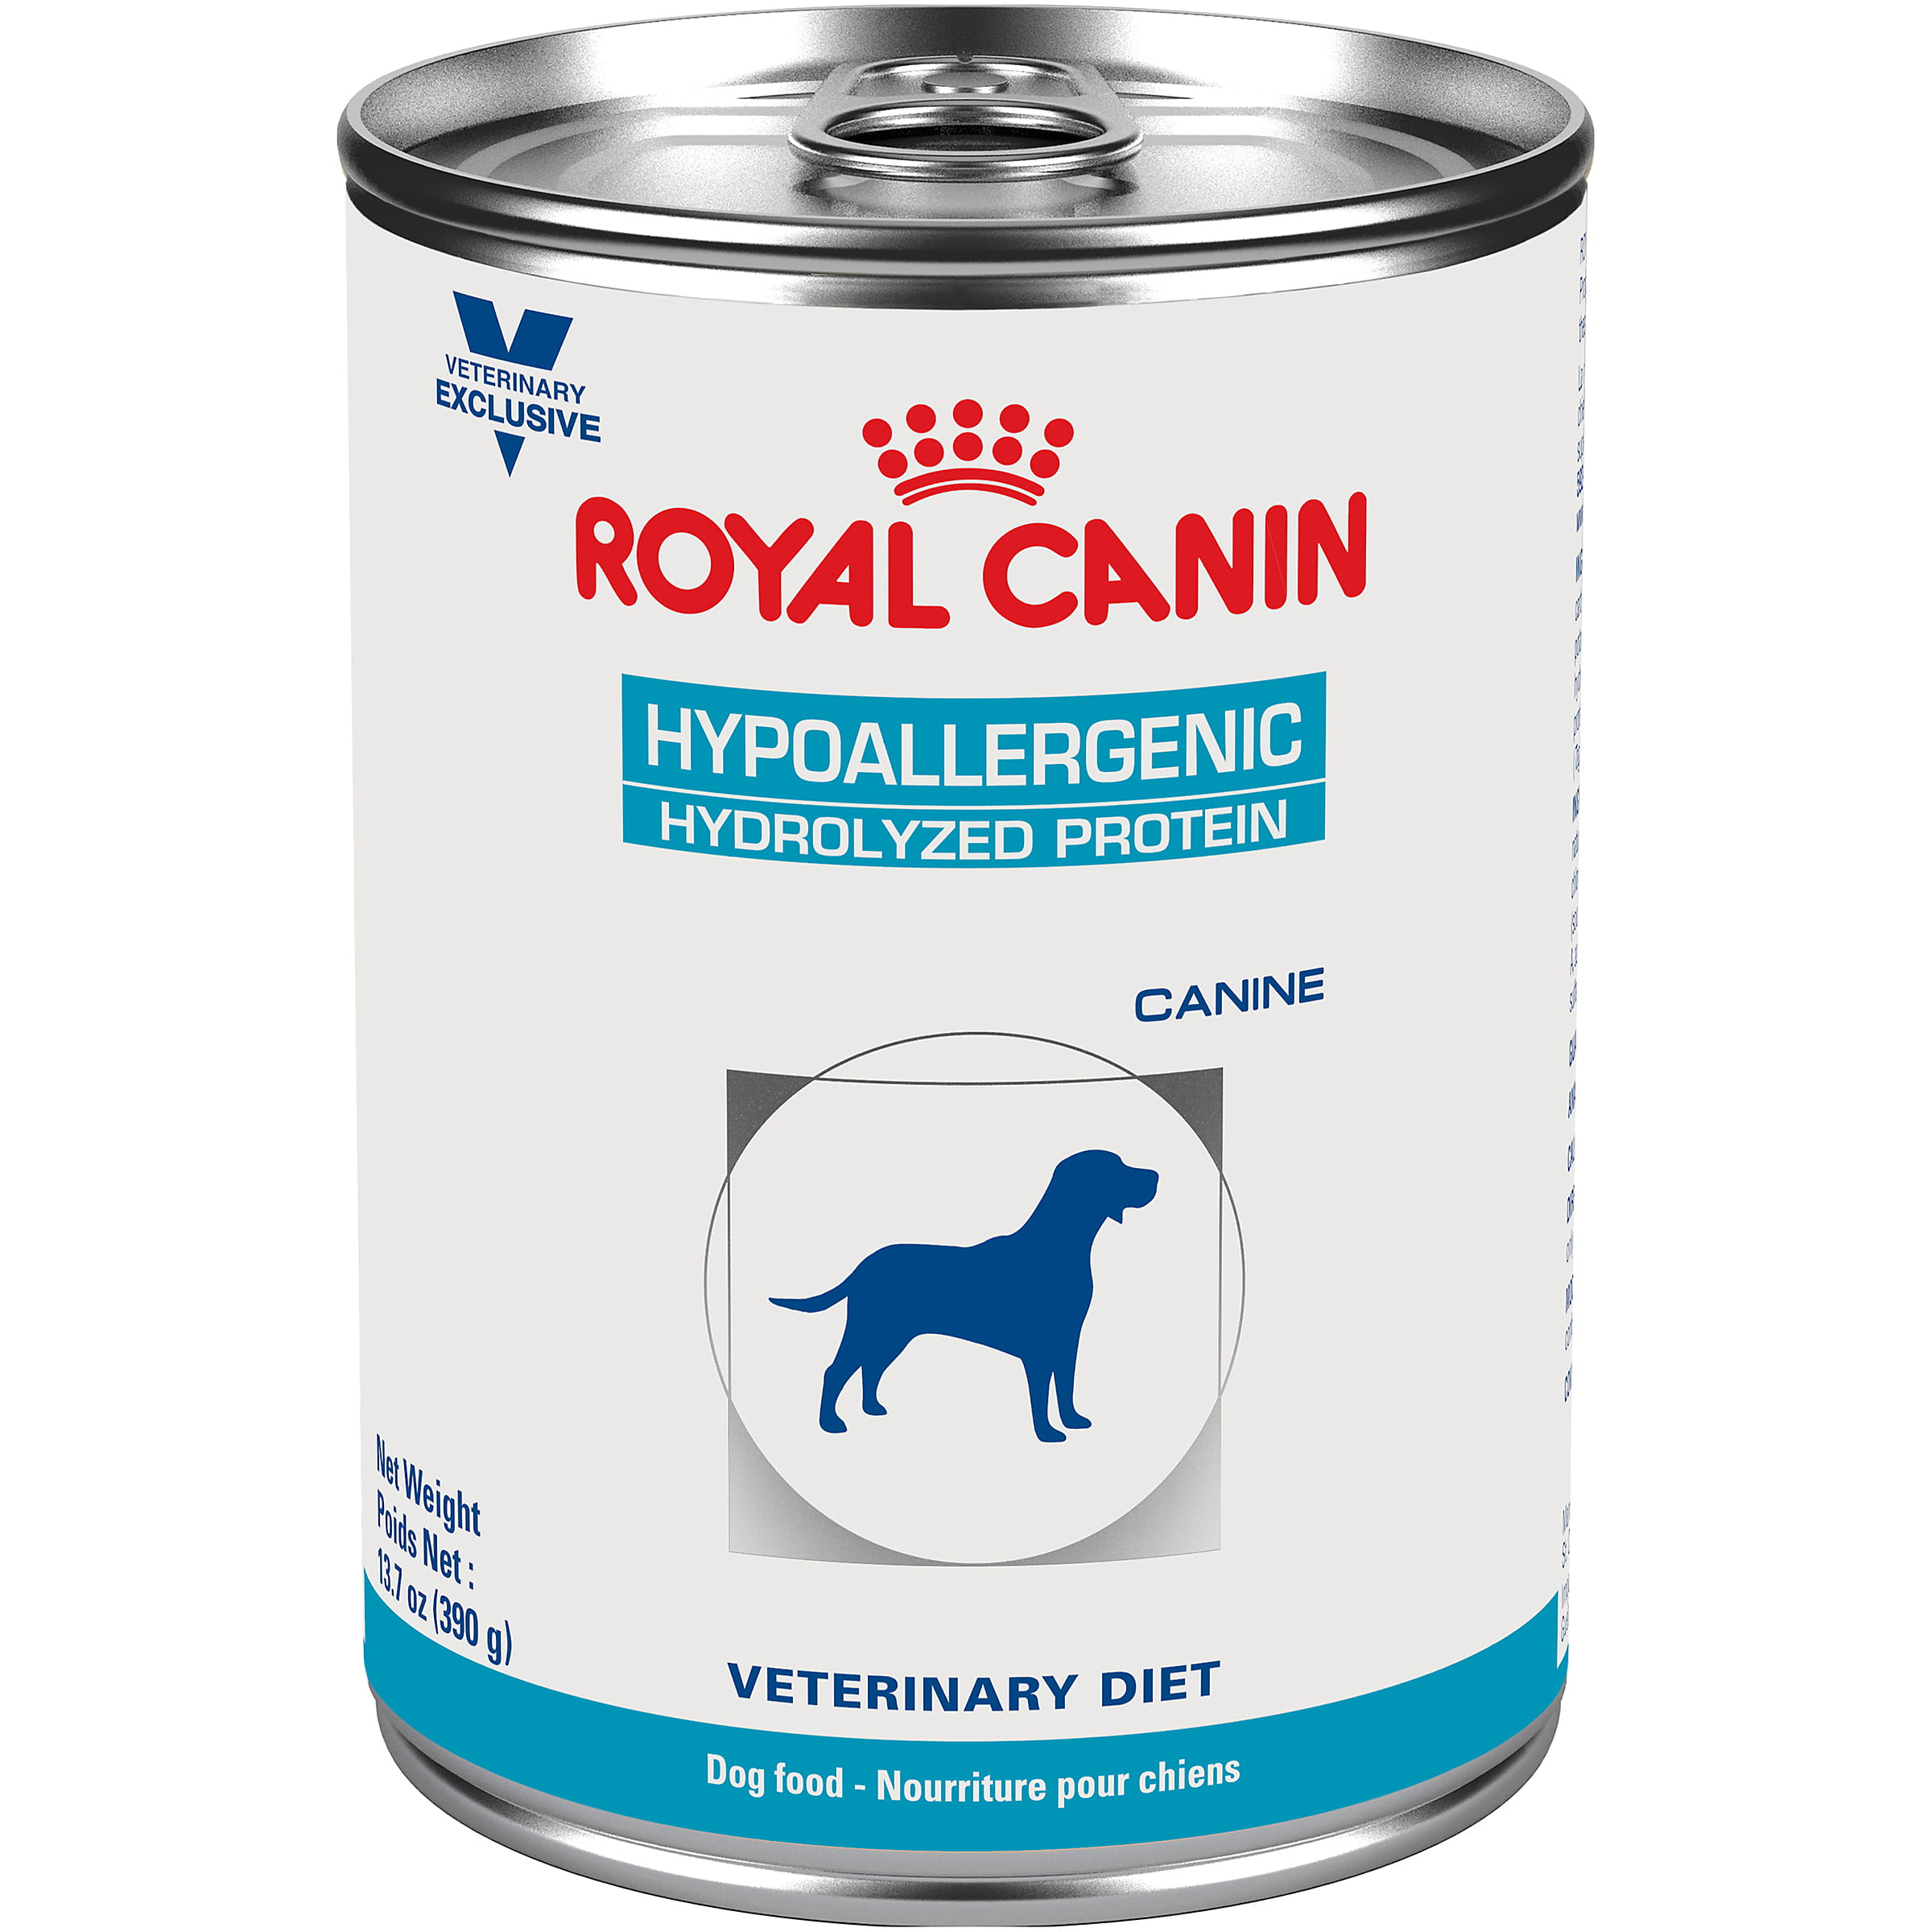 Royal Canin Veterinary Diet Canine Hypoallergenic Hydrolyzed Protein Canned Dog Food